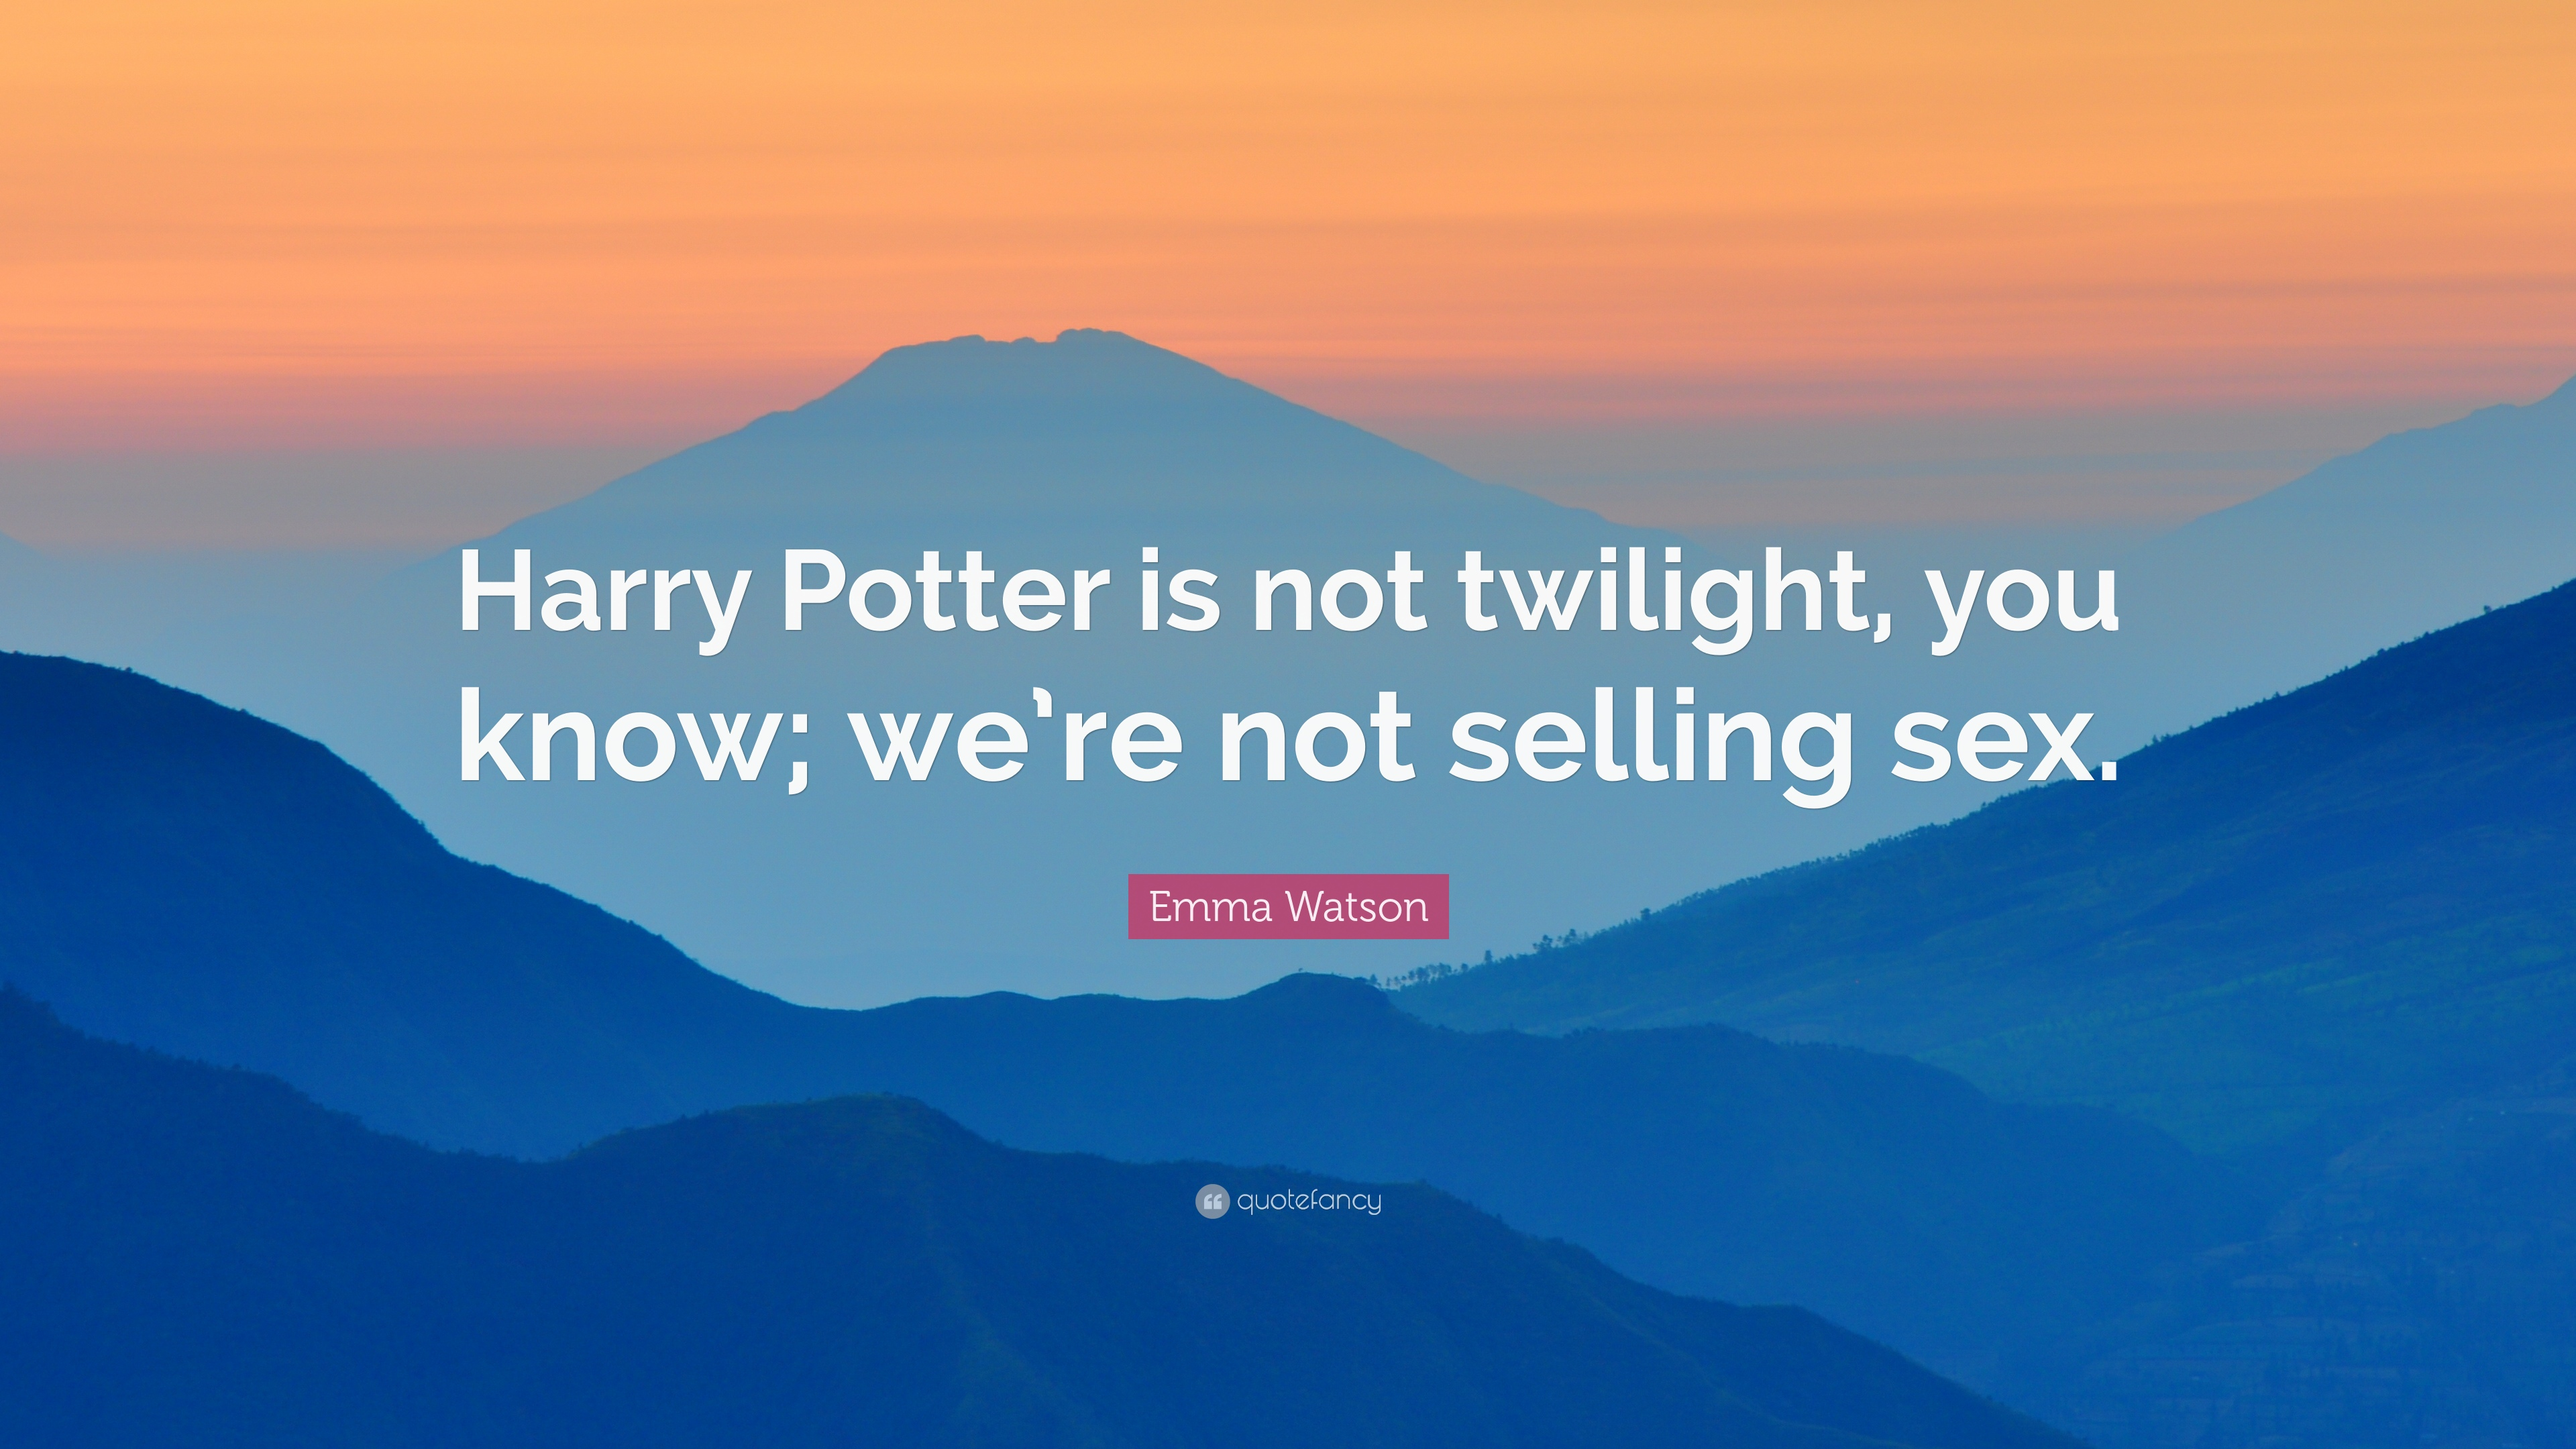 Amazing Wallpaper Harry Potter Twilight - 141172-Emma-Watson-Quote-Harry-Potter-is-not-twilight-you-know-we-re-not  You Should Have_108171.jpg